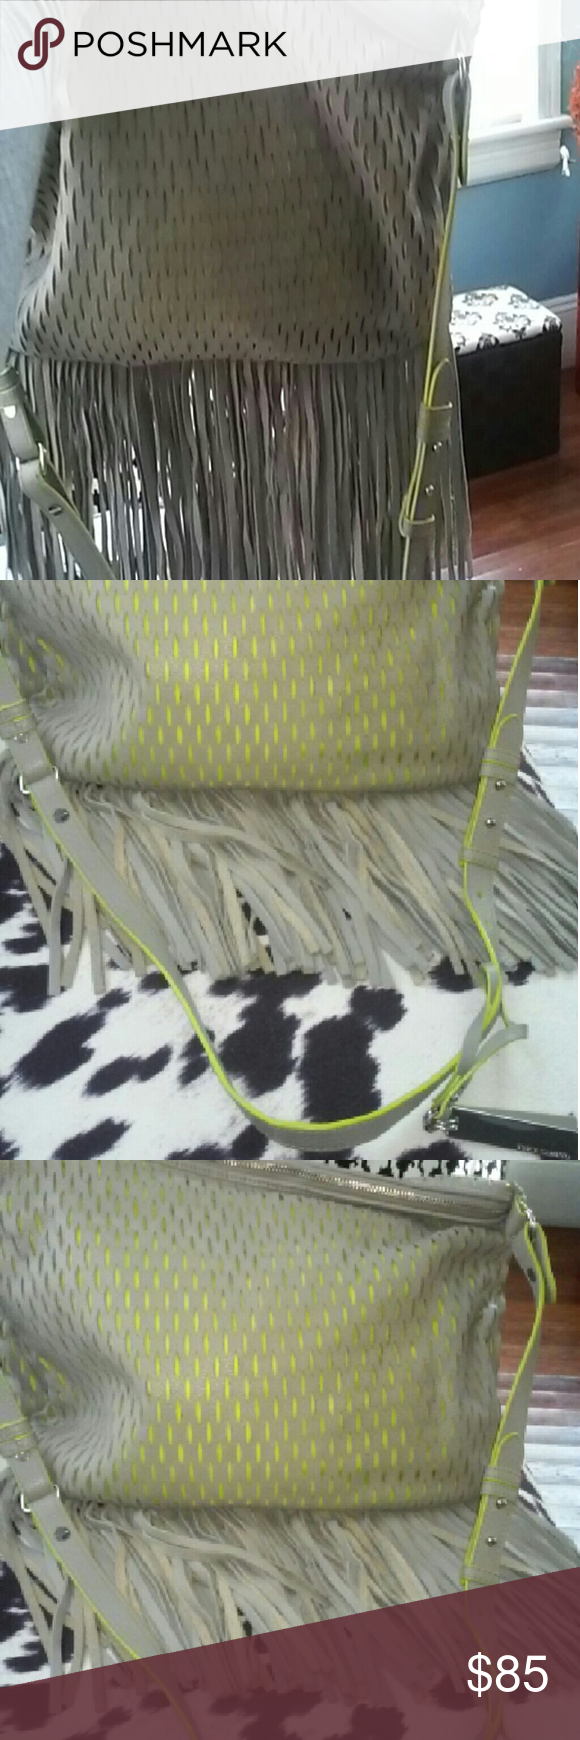 Vince Camuto Butter Bags Shoulder Bags